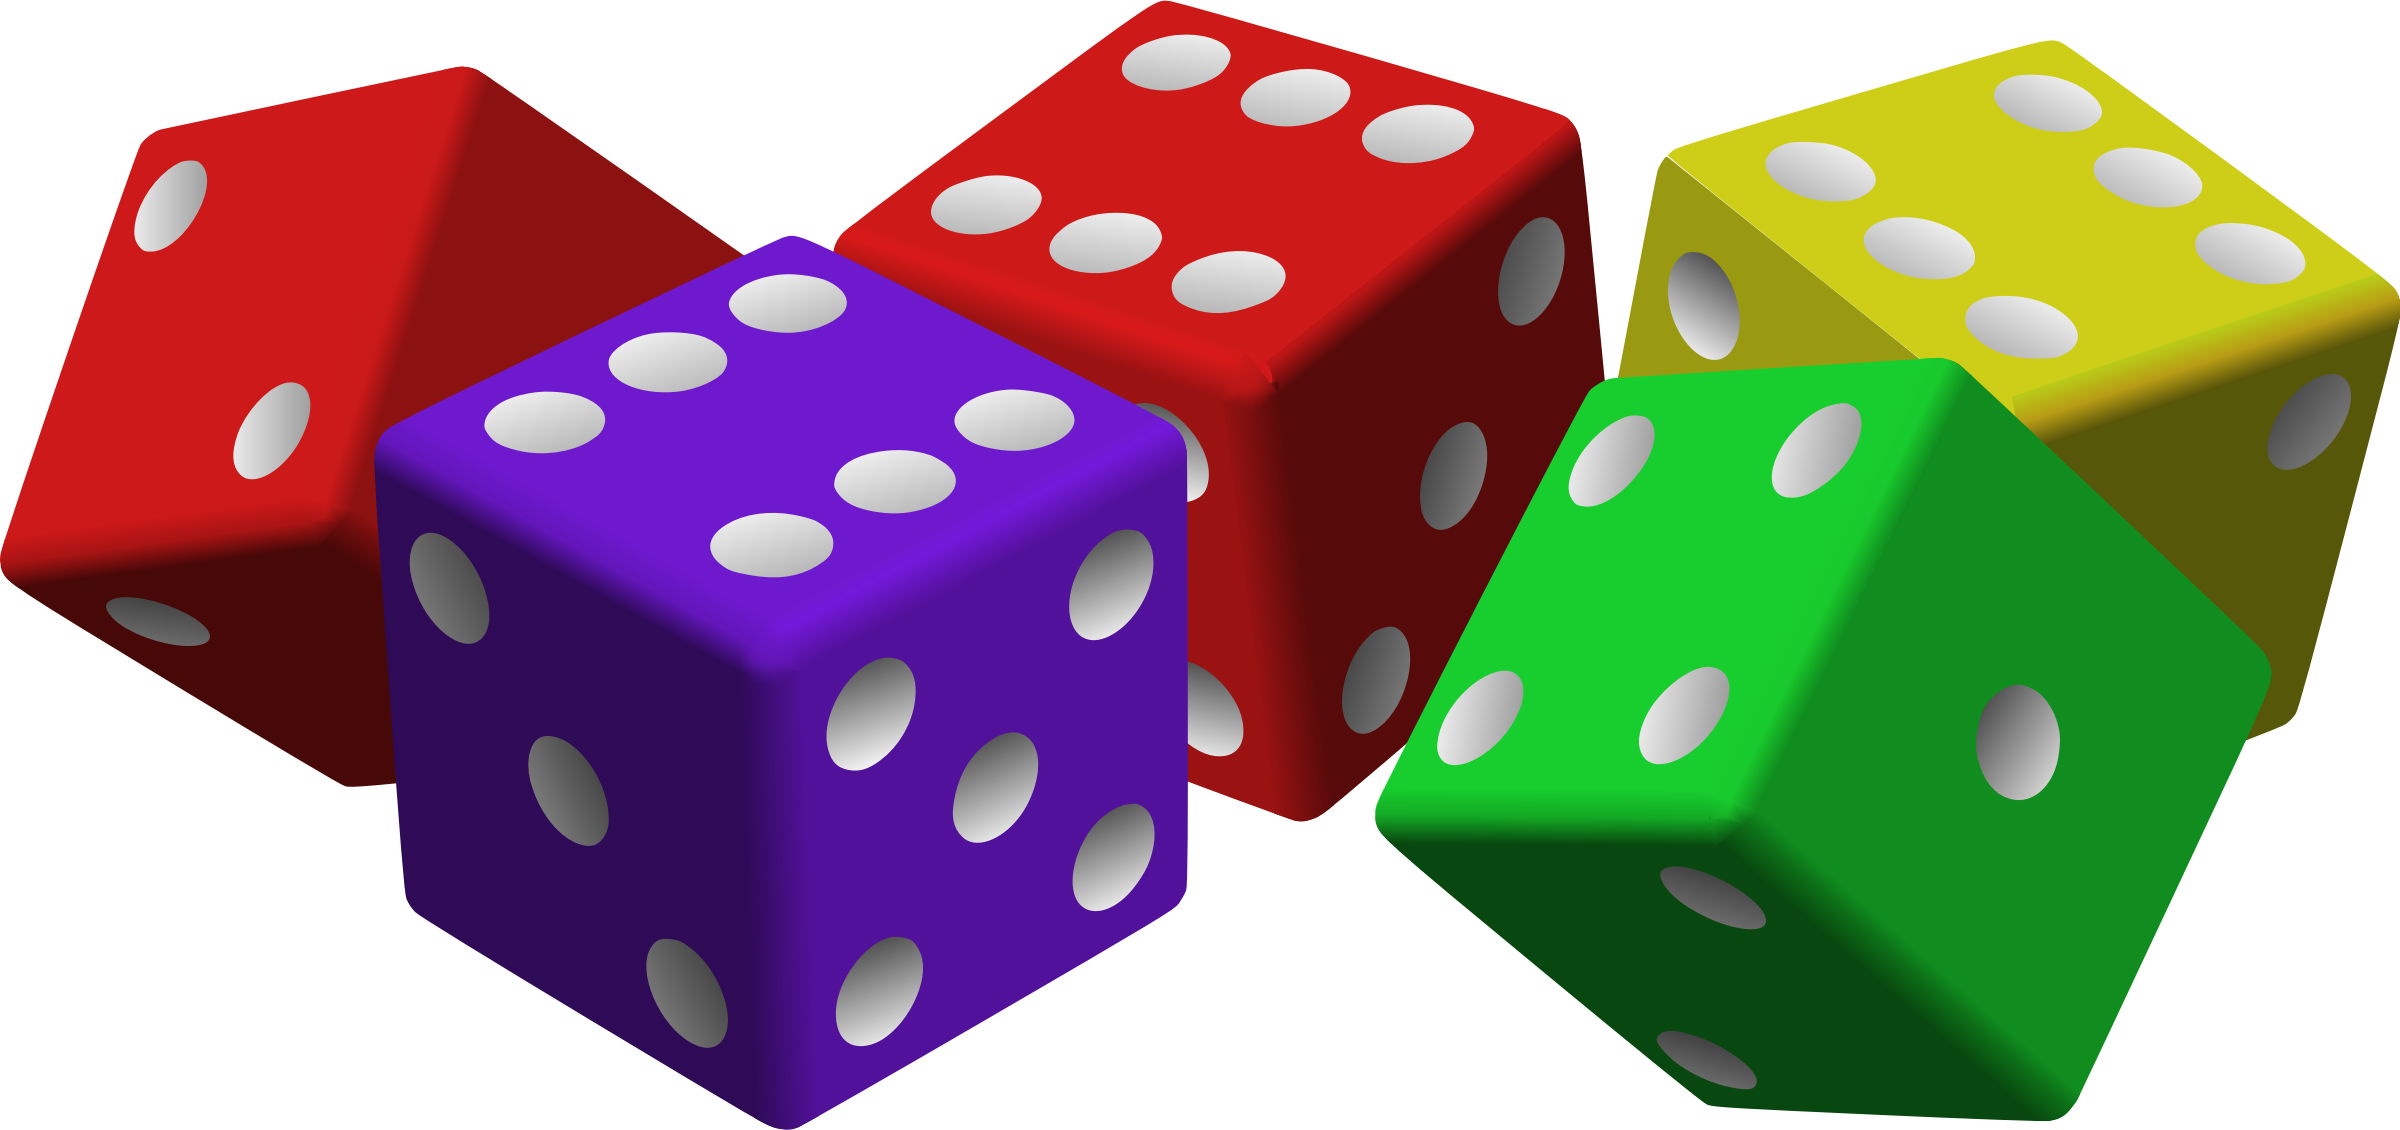 Dice clipart colored dice. Five icons png free